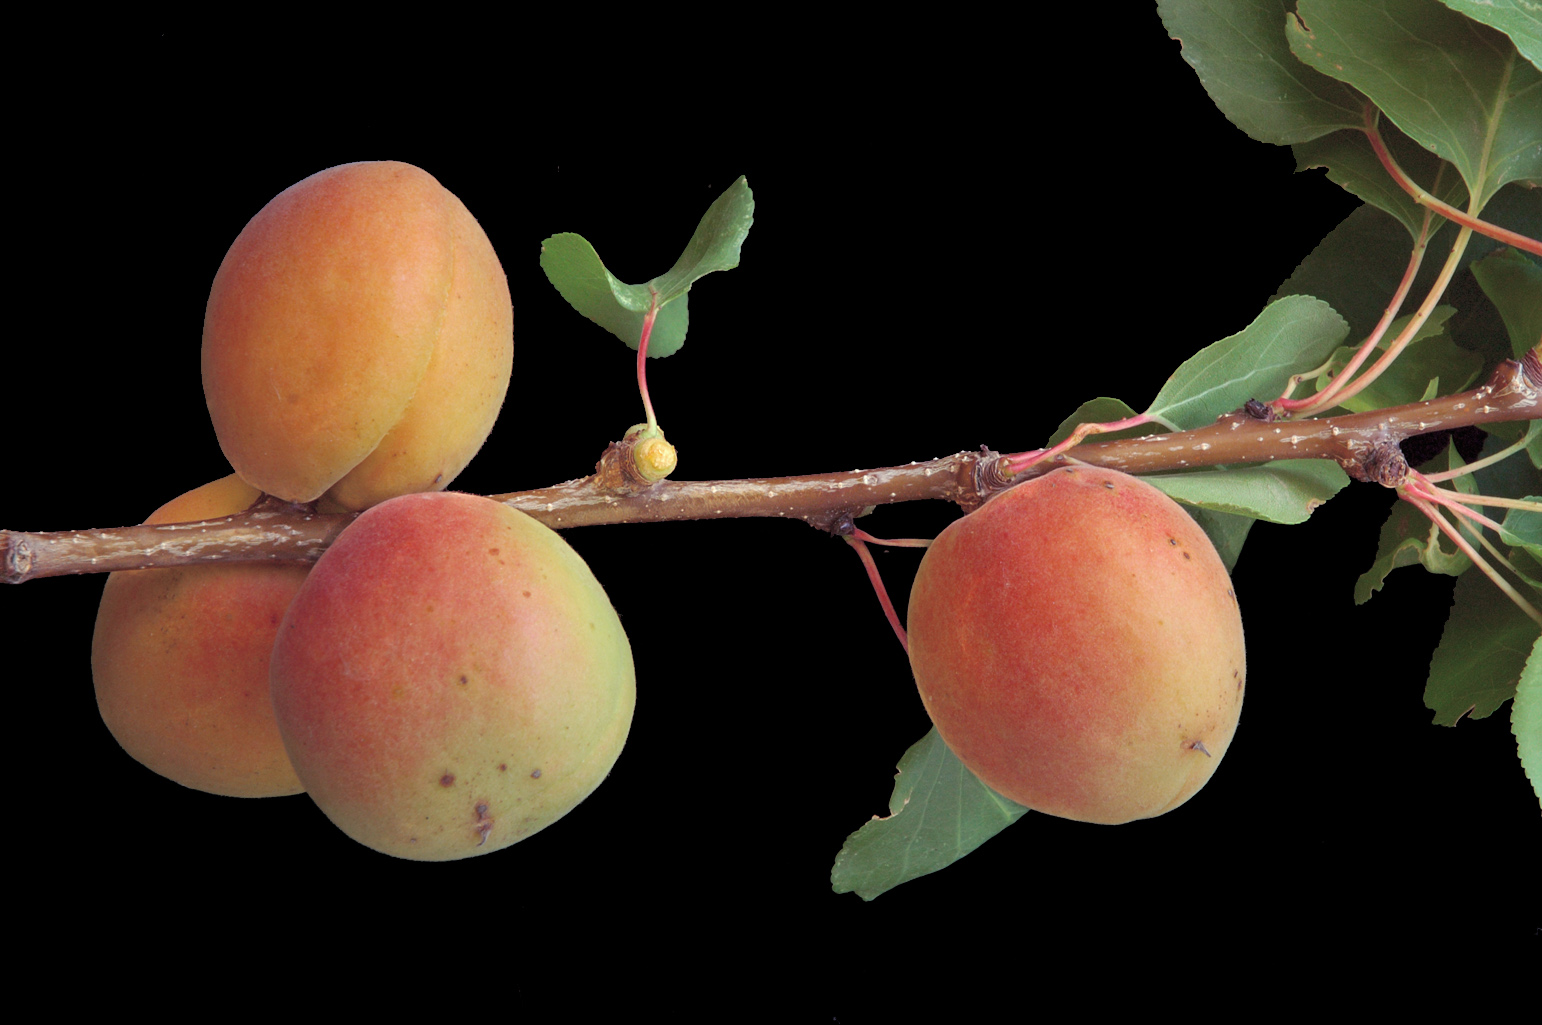 Branch with 4 mature velvety drupes (apricots); one of them shows the well-marked groove along its side